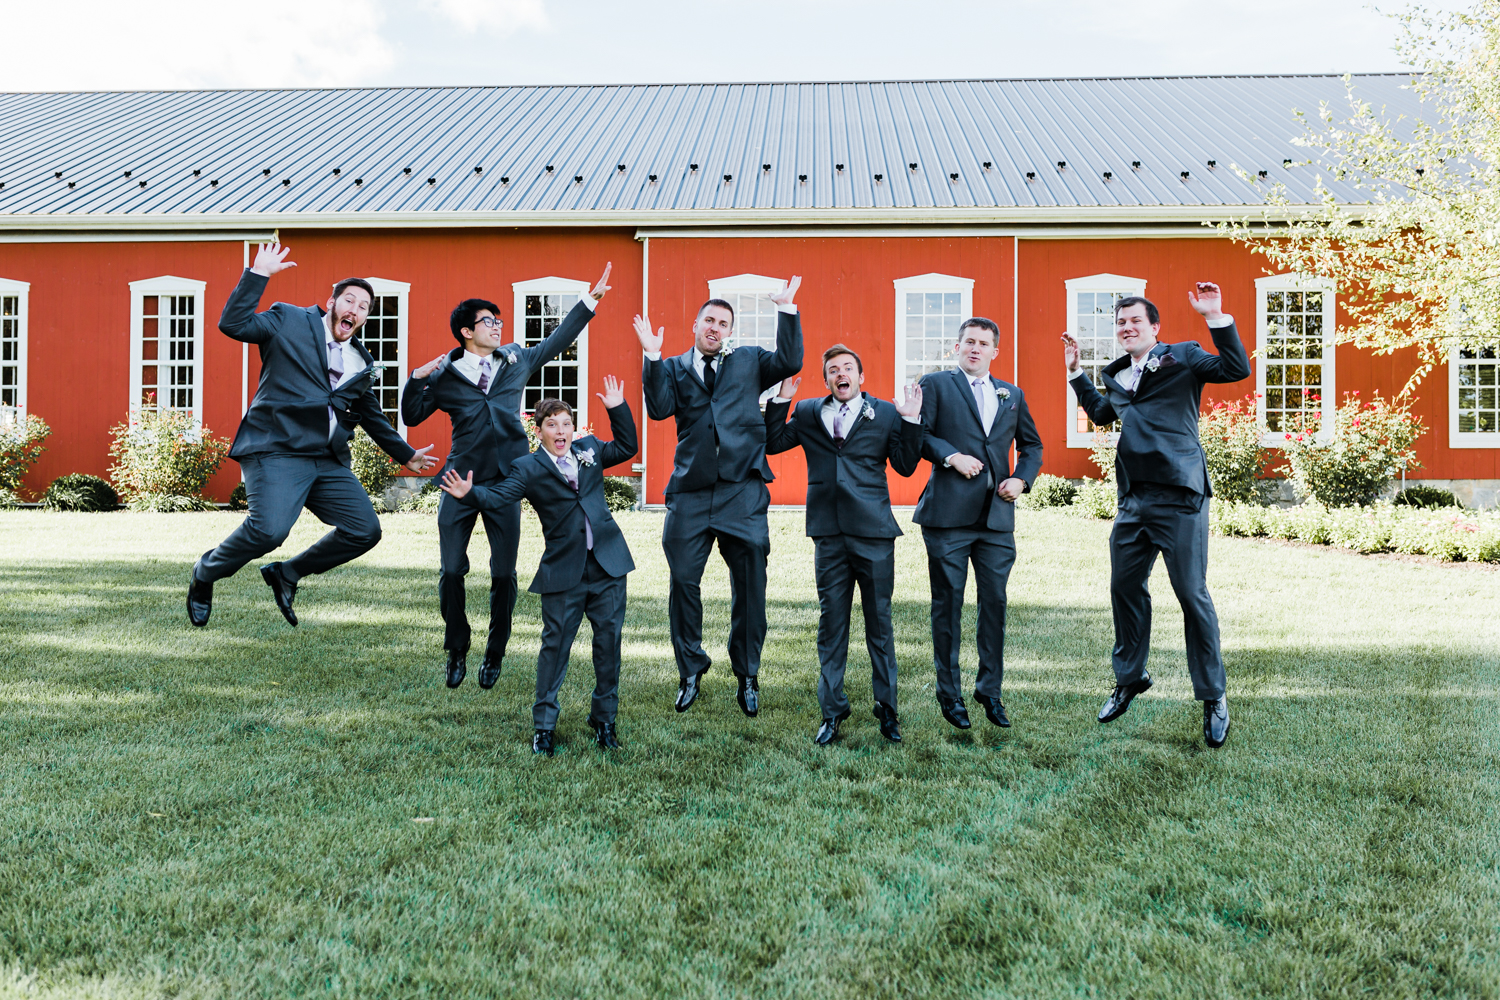 Funny jumping groomsmen - Rustic Maryland Wedding Venue